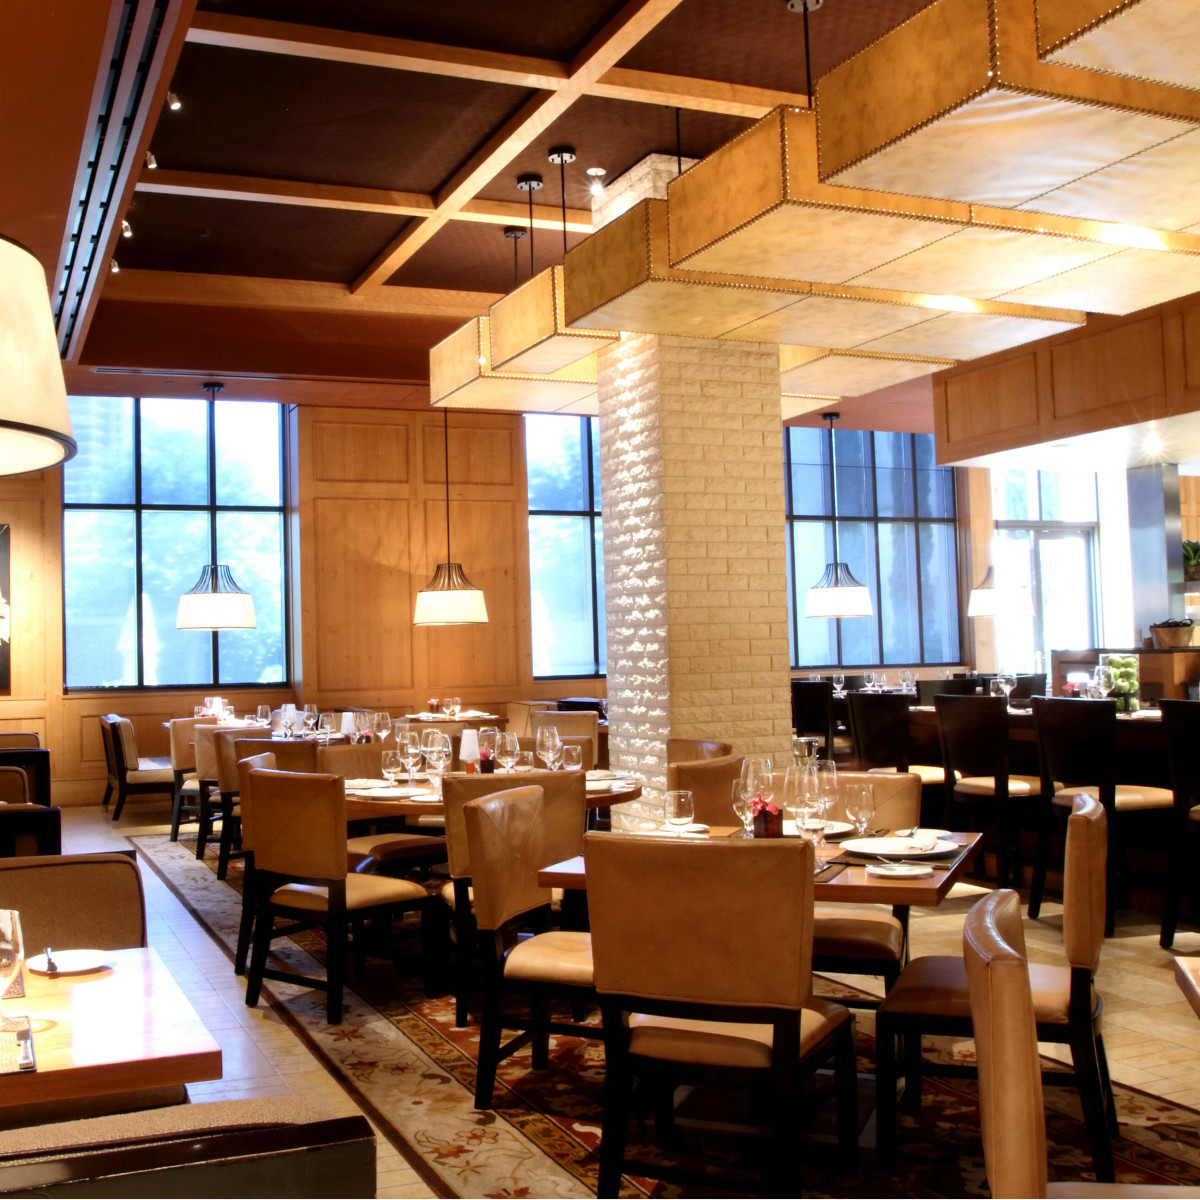 Interior of Fearing's Restaurant at the Ritz-Carlton, Dallas